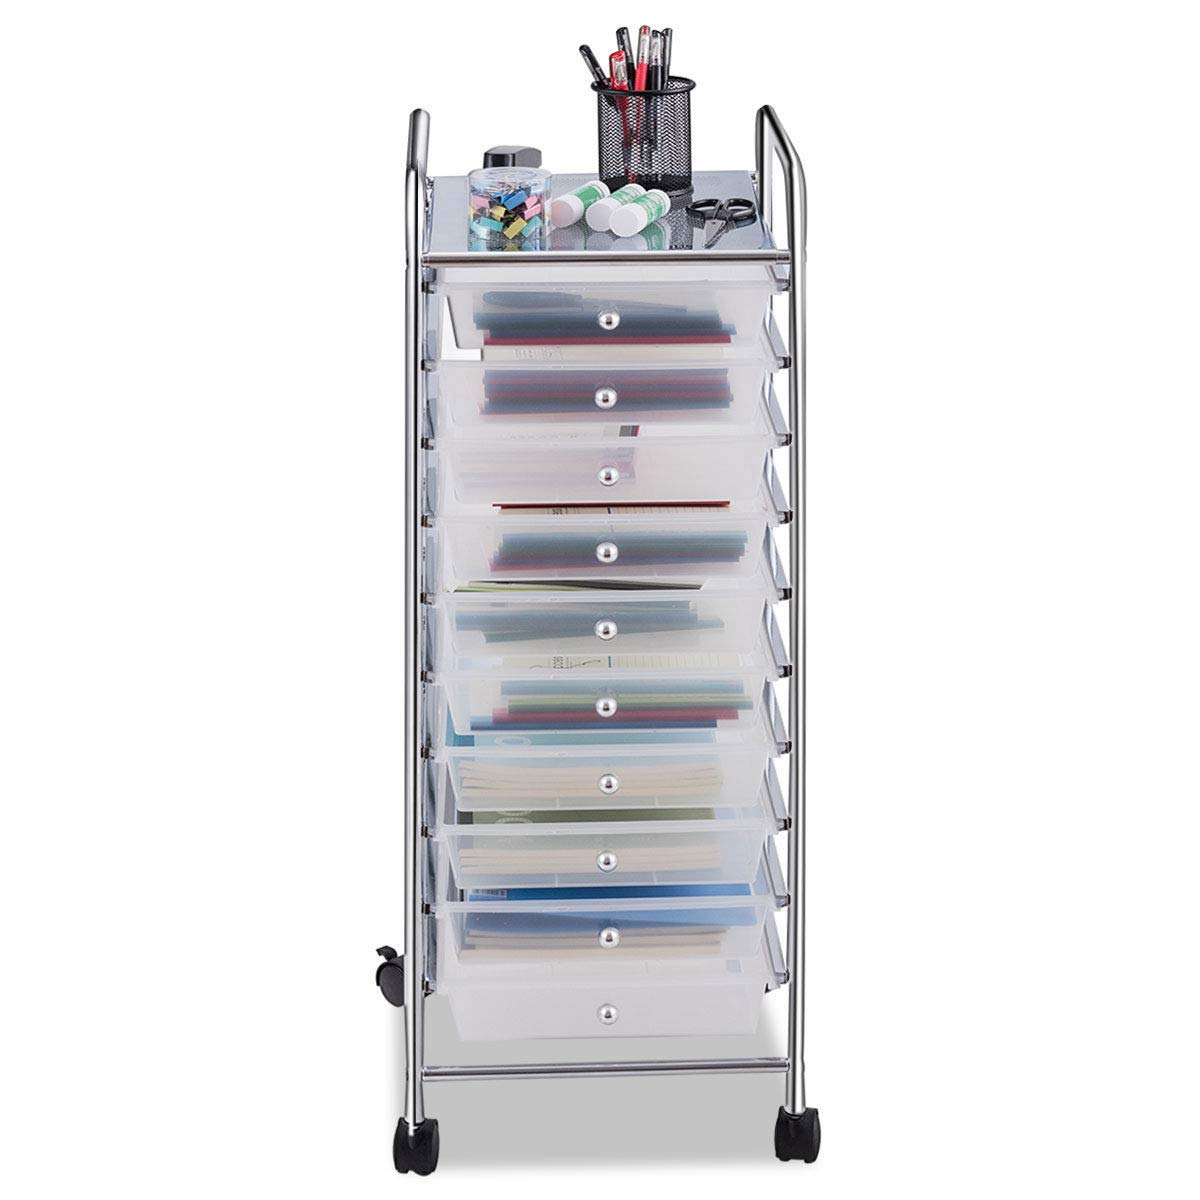 Giantex 10 Drawer Rolling Storage Cart Scrapbook Paper Office School Organizer (Clear) by Giantex (Image #8)